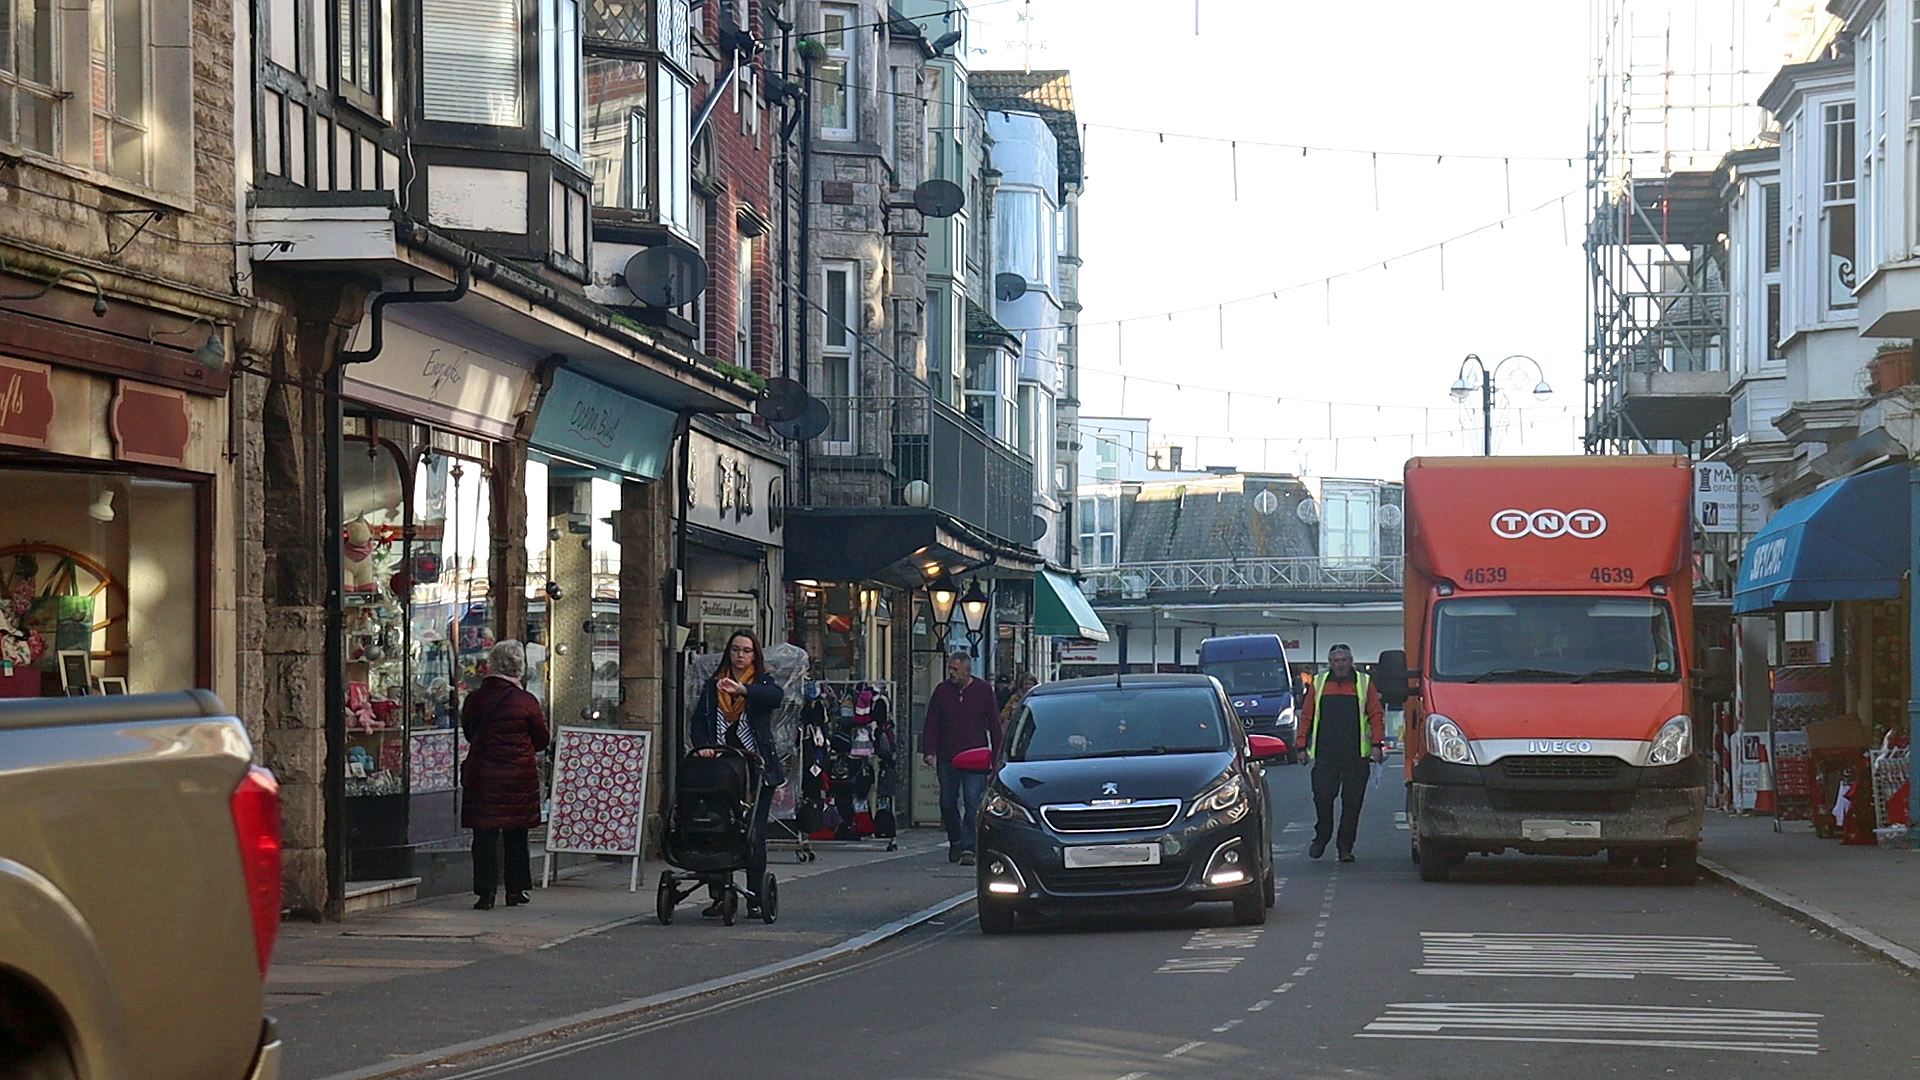 View down Institute Road with lorry in loading bay